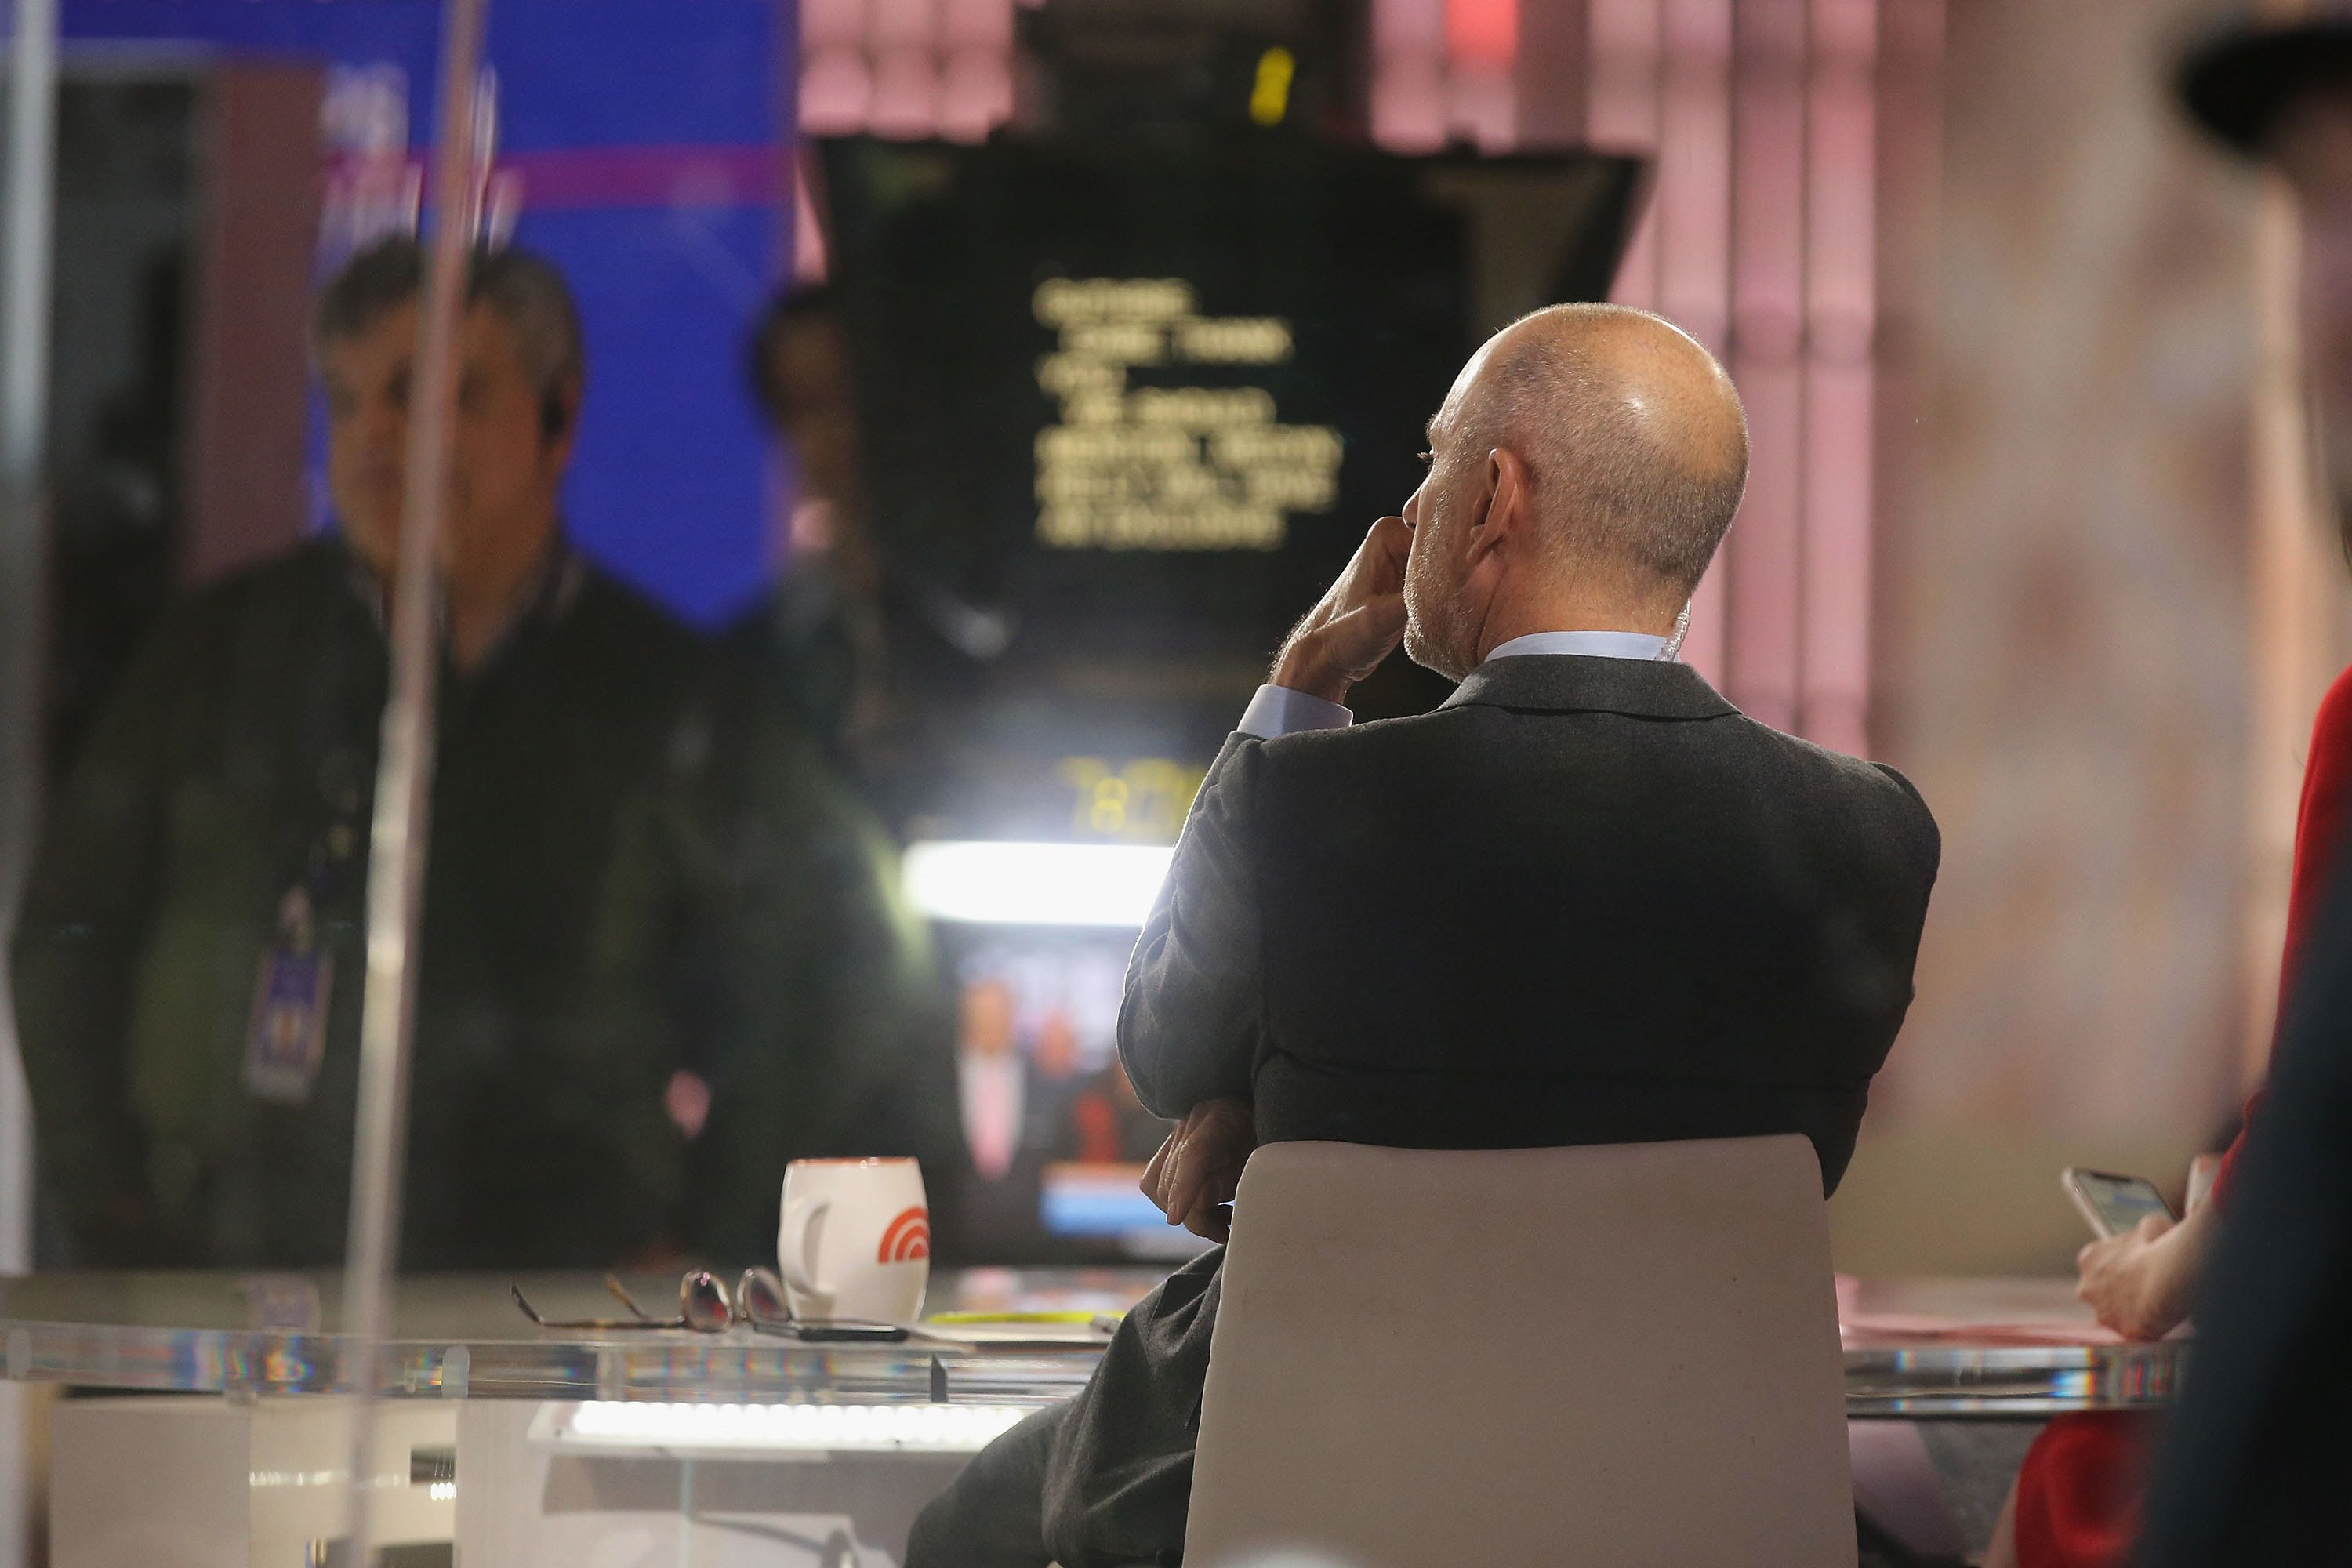 NEW YORK, NY - NOVEMBER 17:  'Today' Show host  Matt Lauer at work in the studio when Tim McGraw and Faith Hill perform on NBC's 'Today' Show at Rockefeller Plaza on November 17, 2017 in New York City.  (Photo by Al Pereira/WireImage)